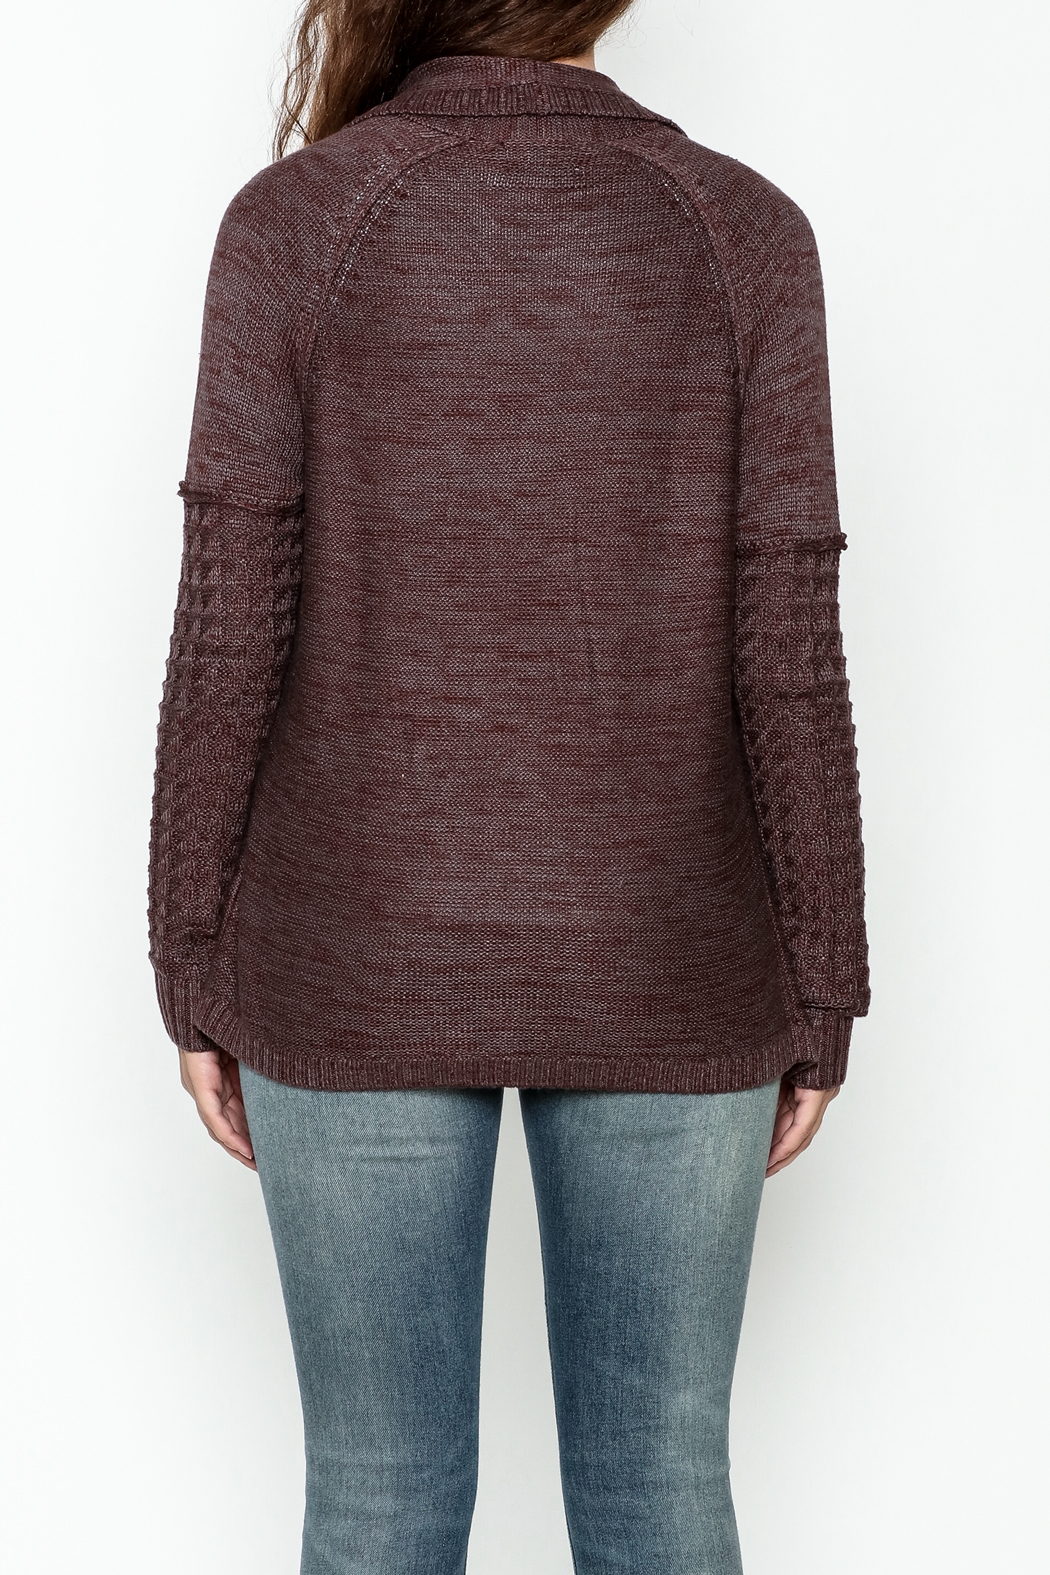 Gentle Fawn Classic Open Cardigan - Back Cropped Image